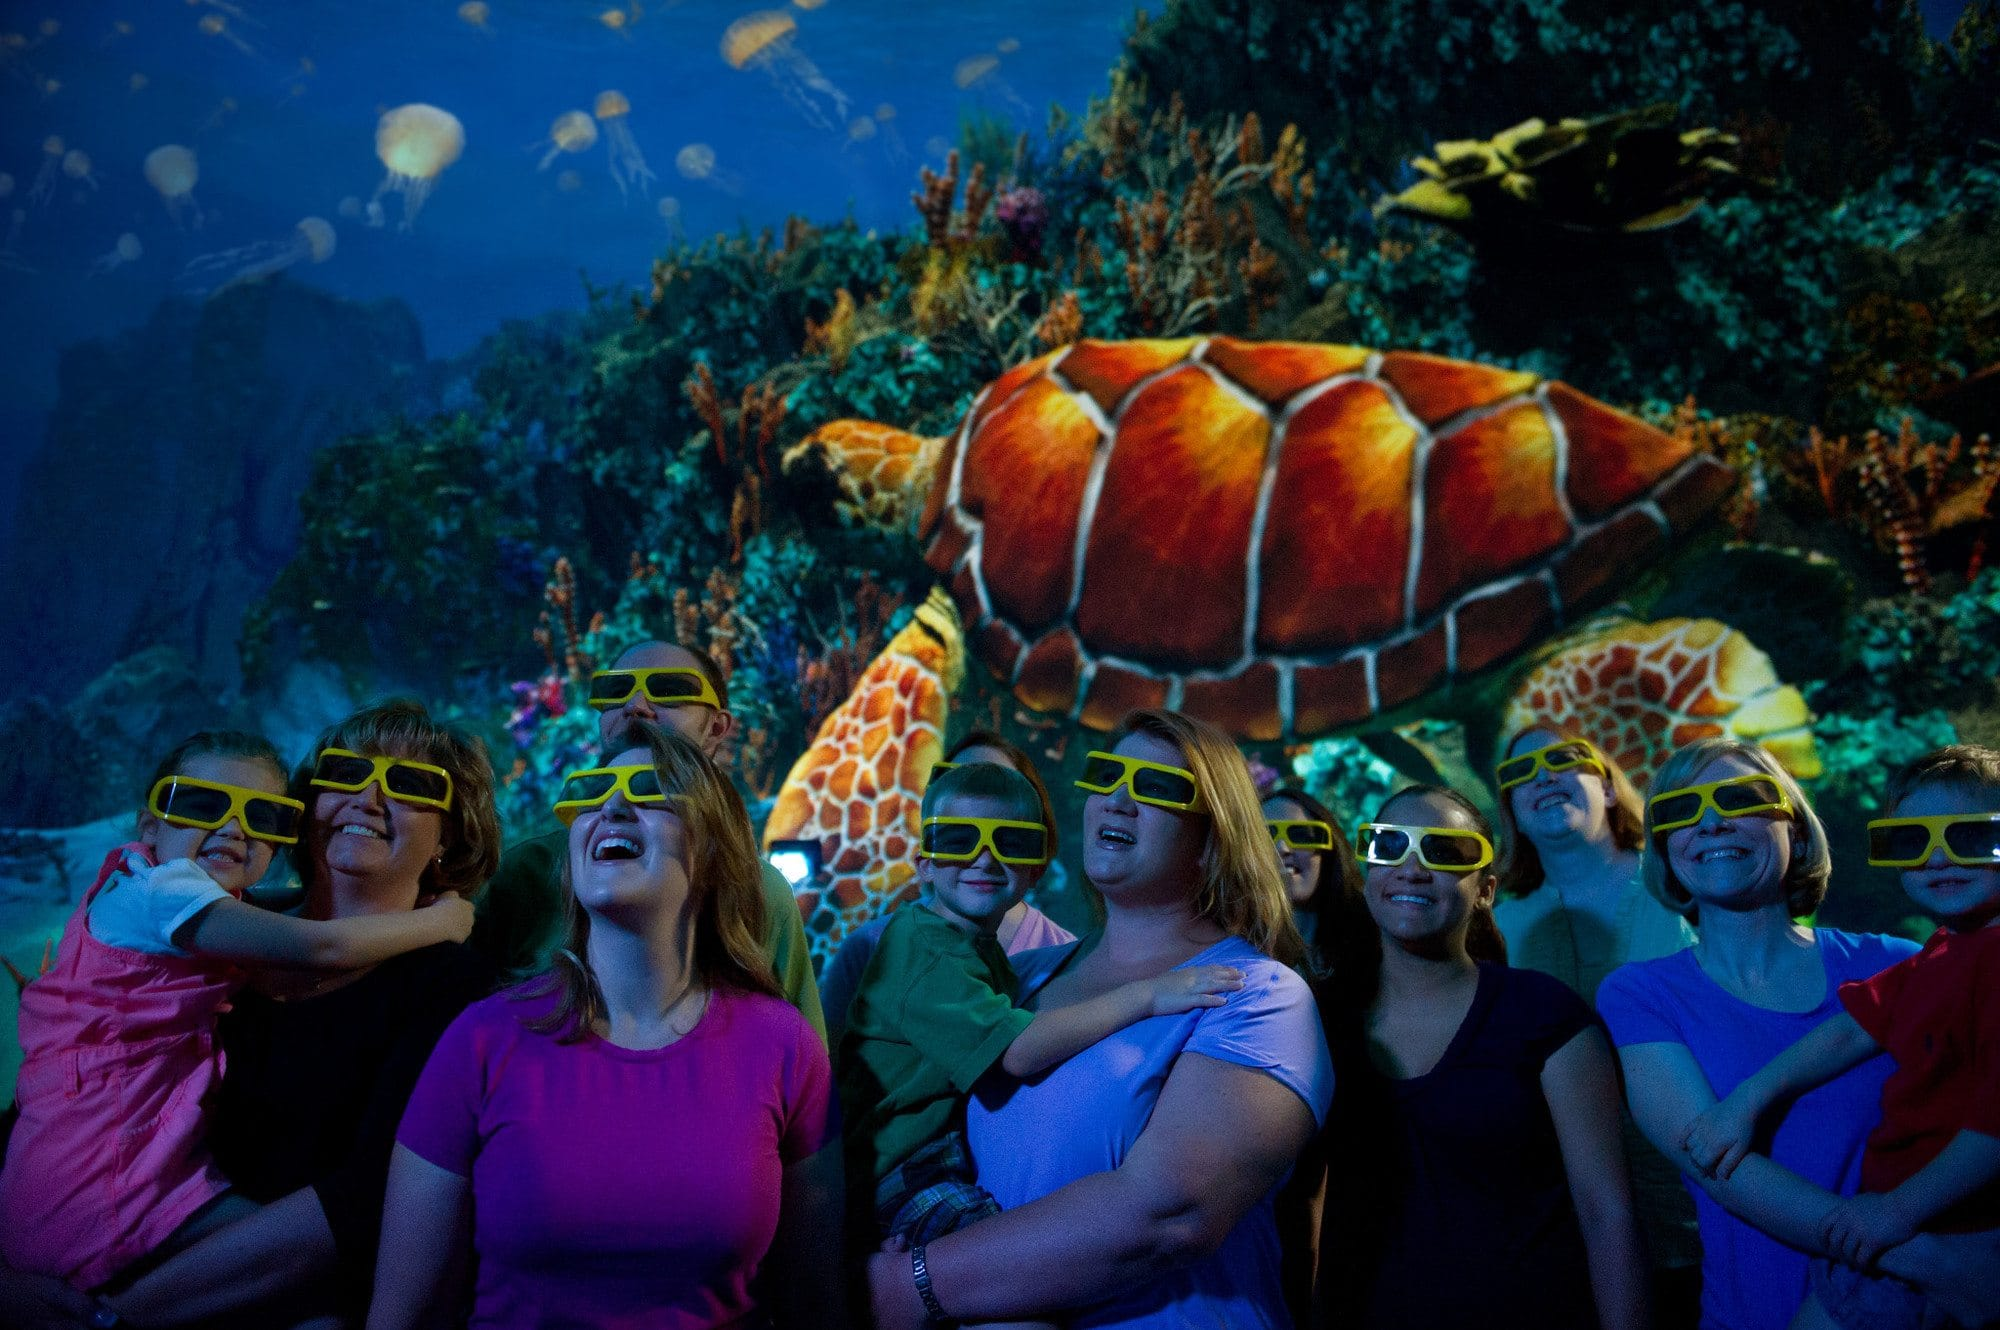 Escape the rain at SeaWorld Orlando by watching the Turtle Trek 3-D movie